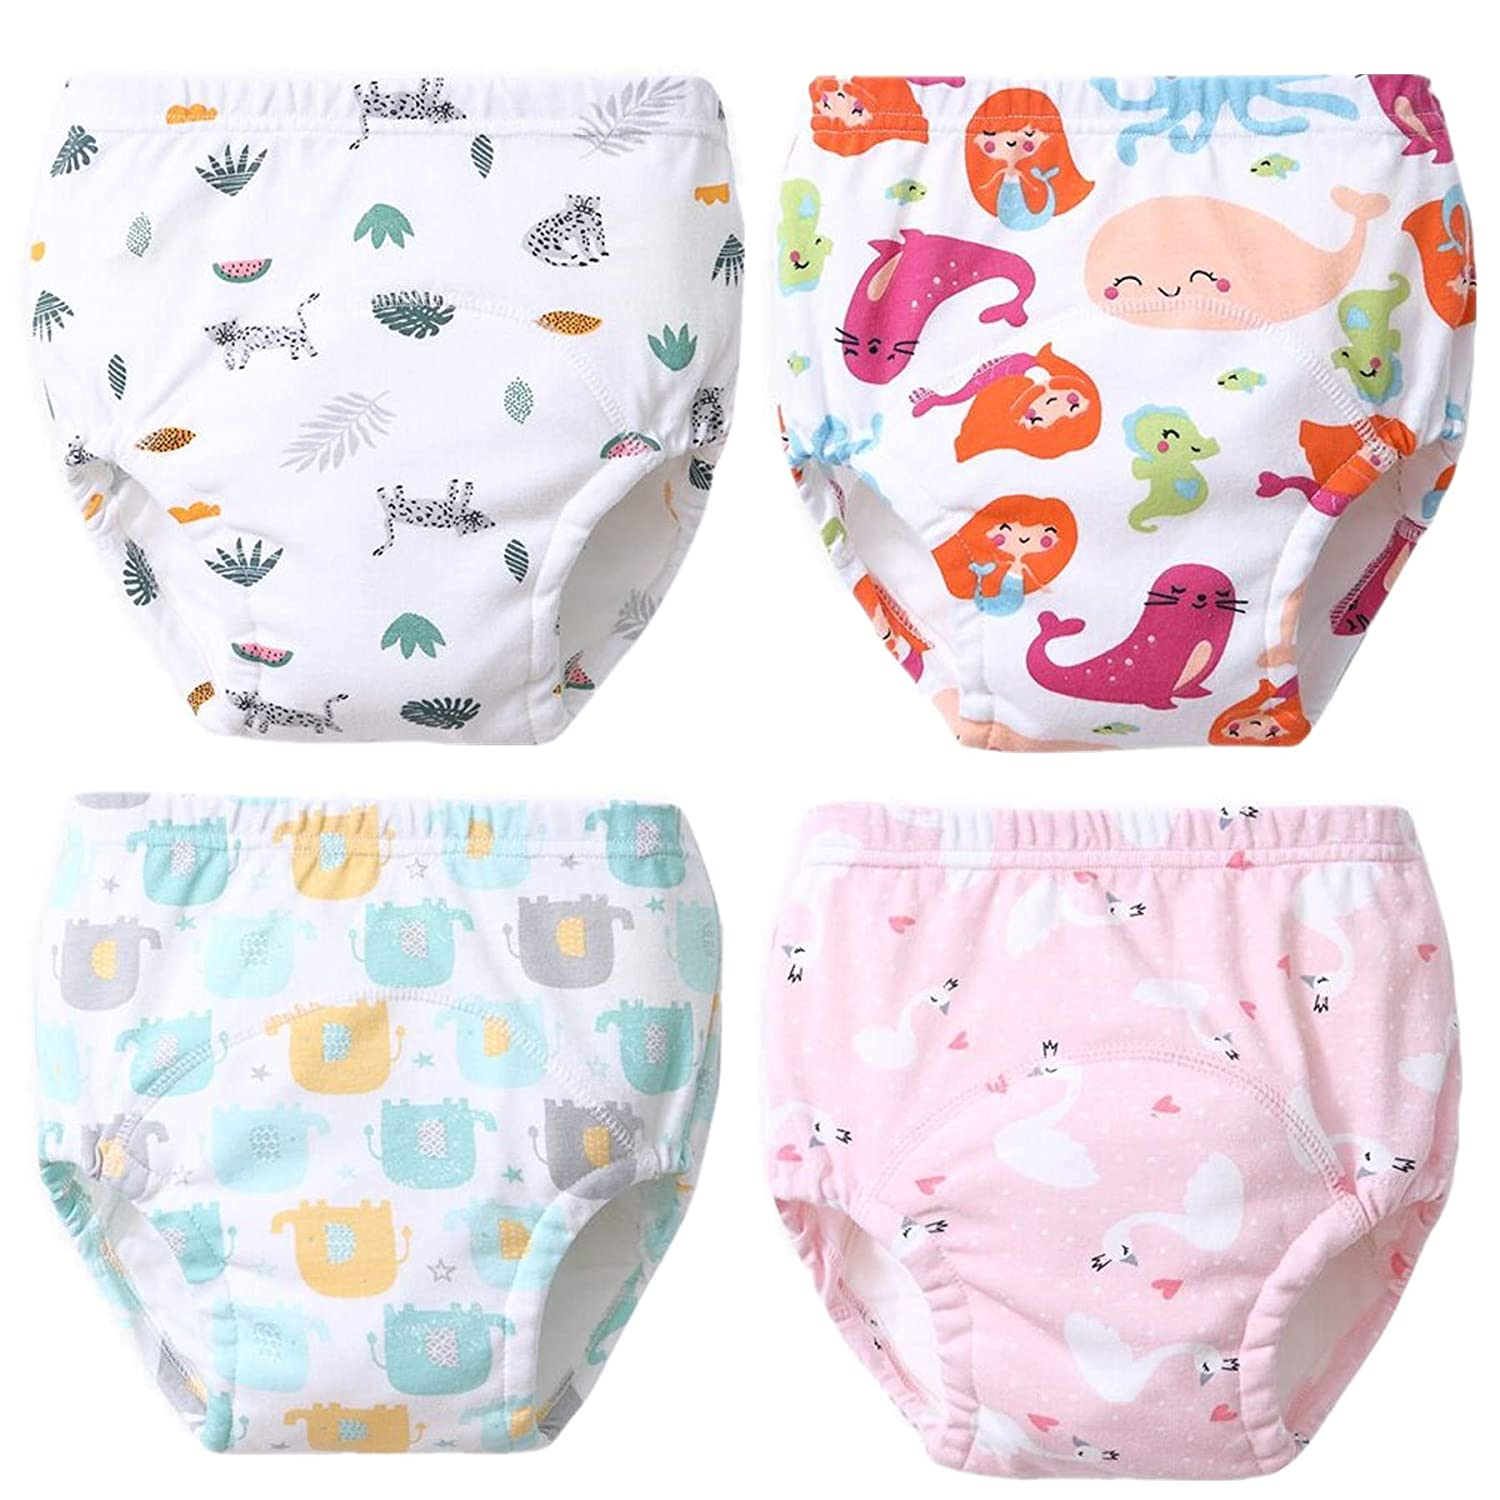 4 Pack Toddler Potty Training Pants Six Layered Cotton Training Underwear for Toddlers Girls Boys 6M-3T B, 6-18 Months-S